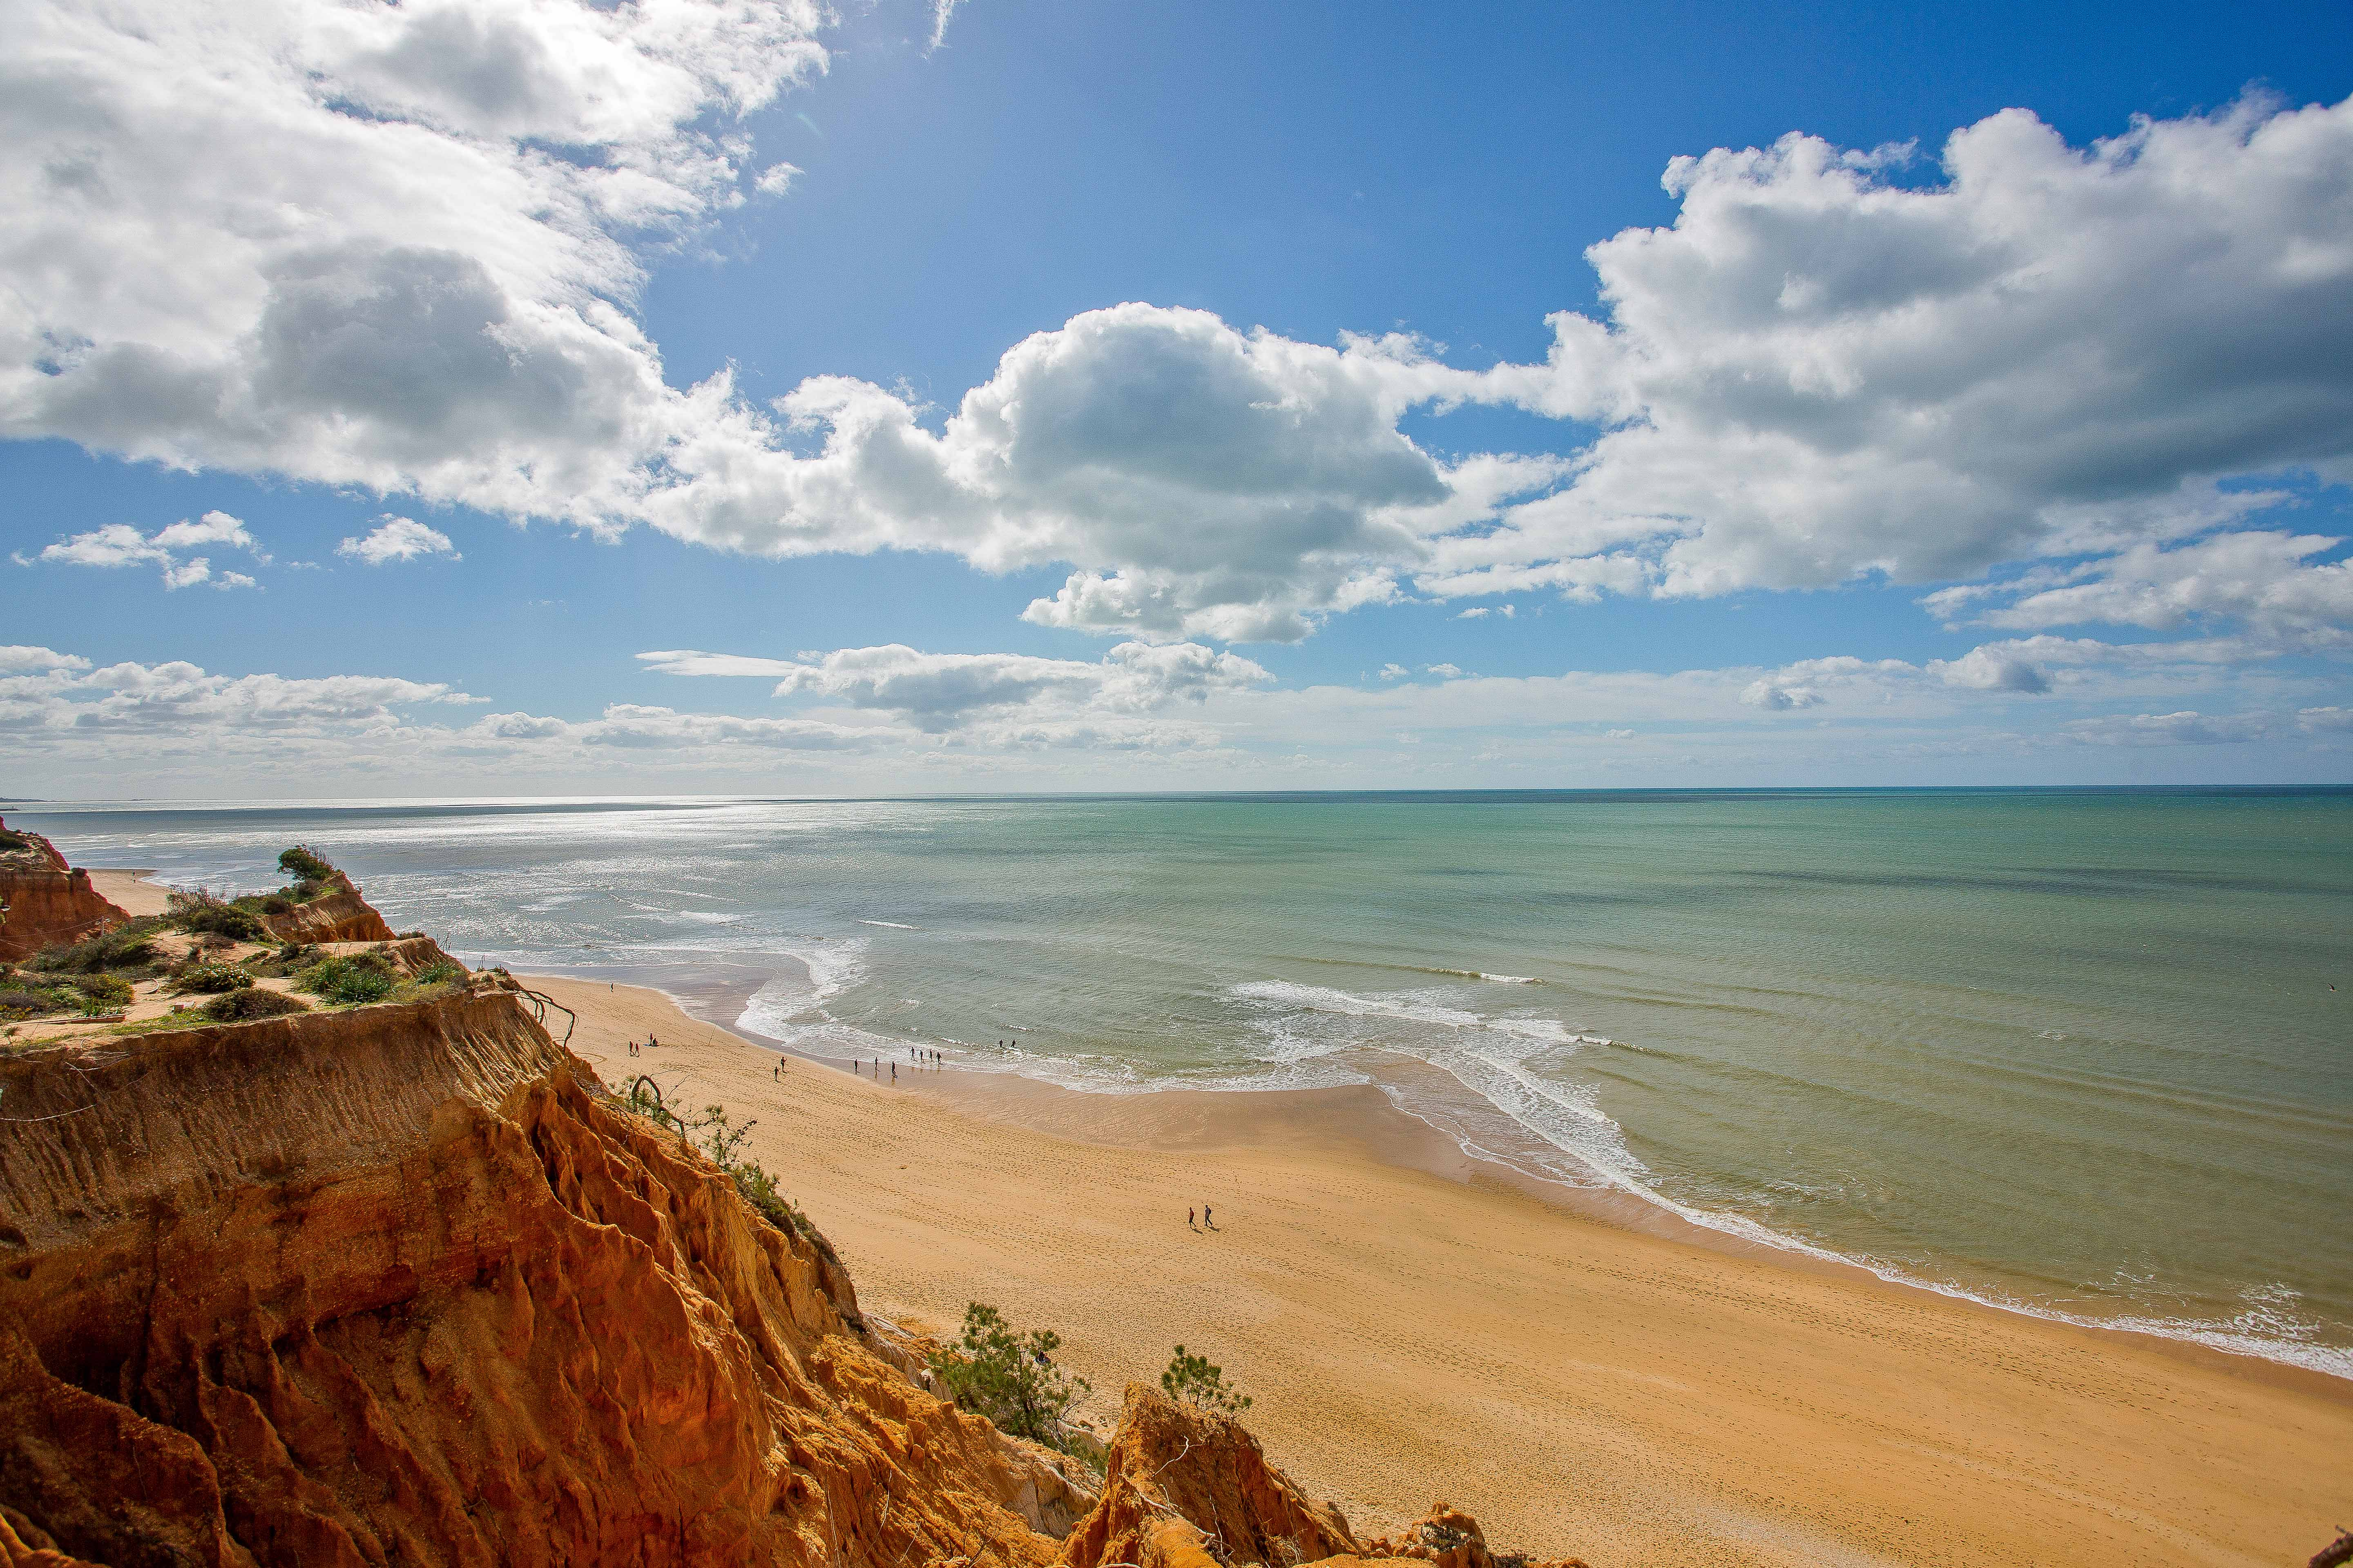 Praia de Falésia is one of the most beautiful beaches in the world.